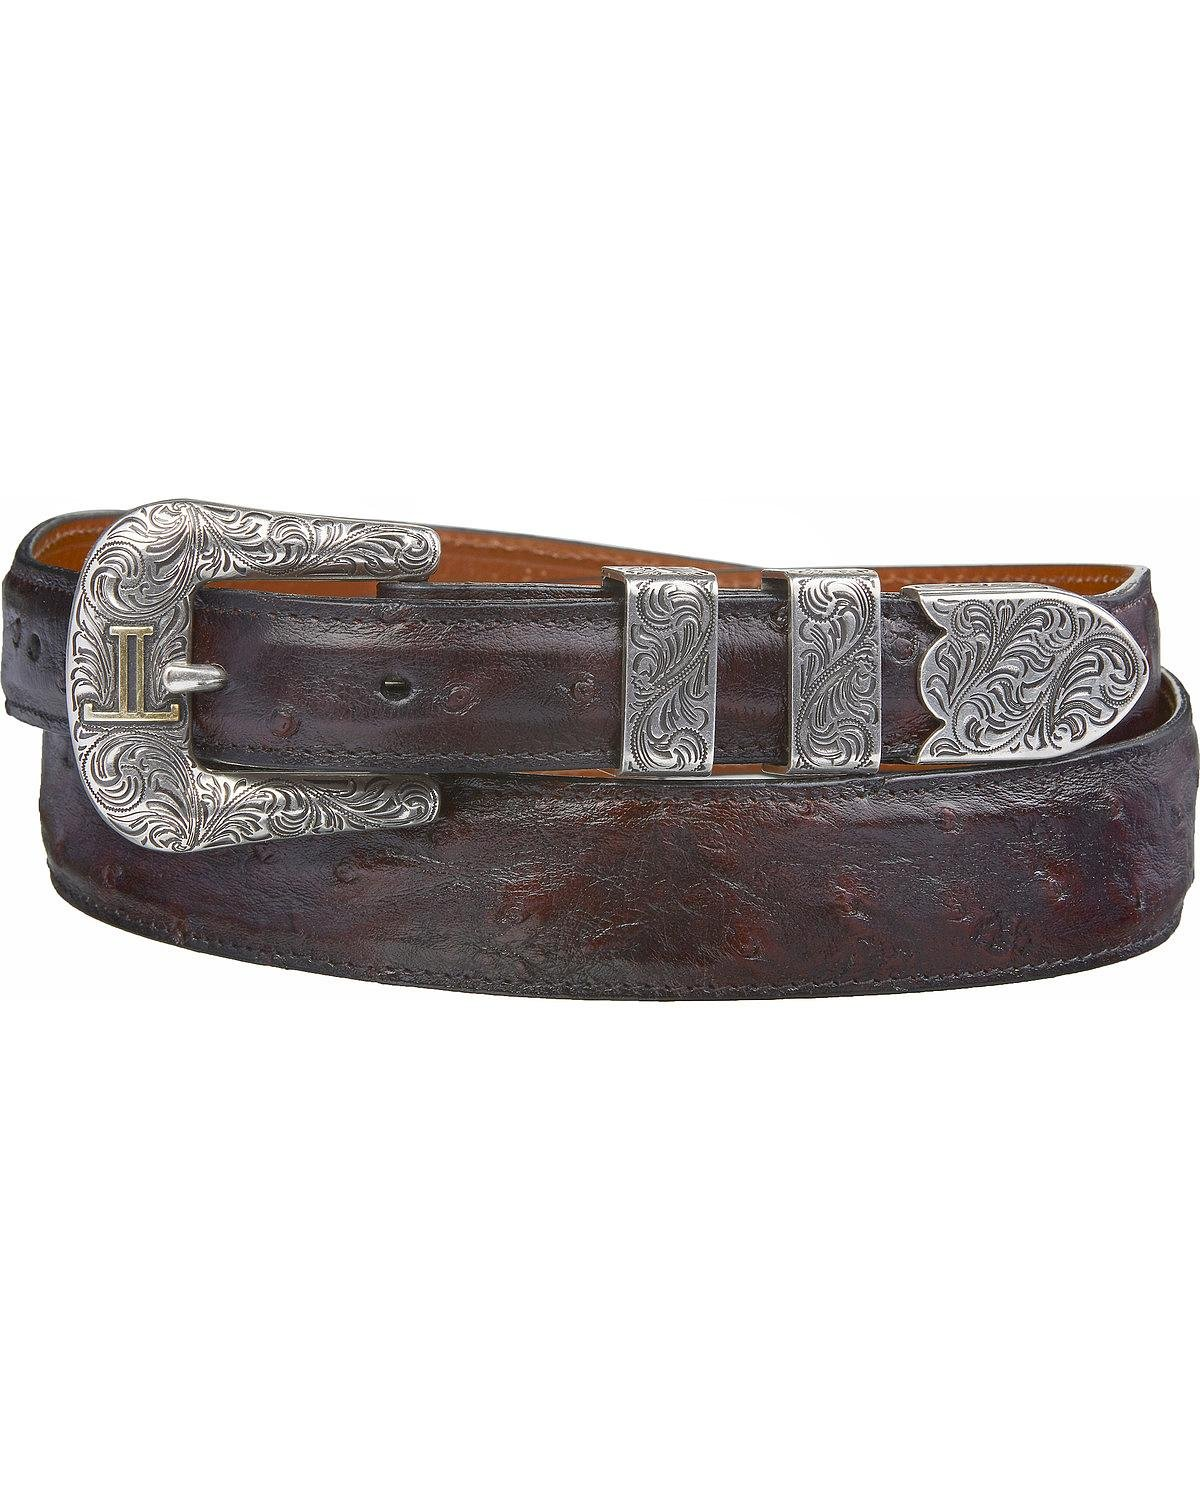 Lucchese Men's Cherry Full Quill Ostrich Leather Belt Black Cherry 34